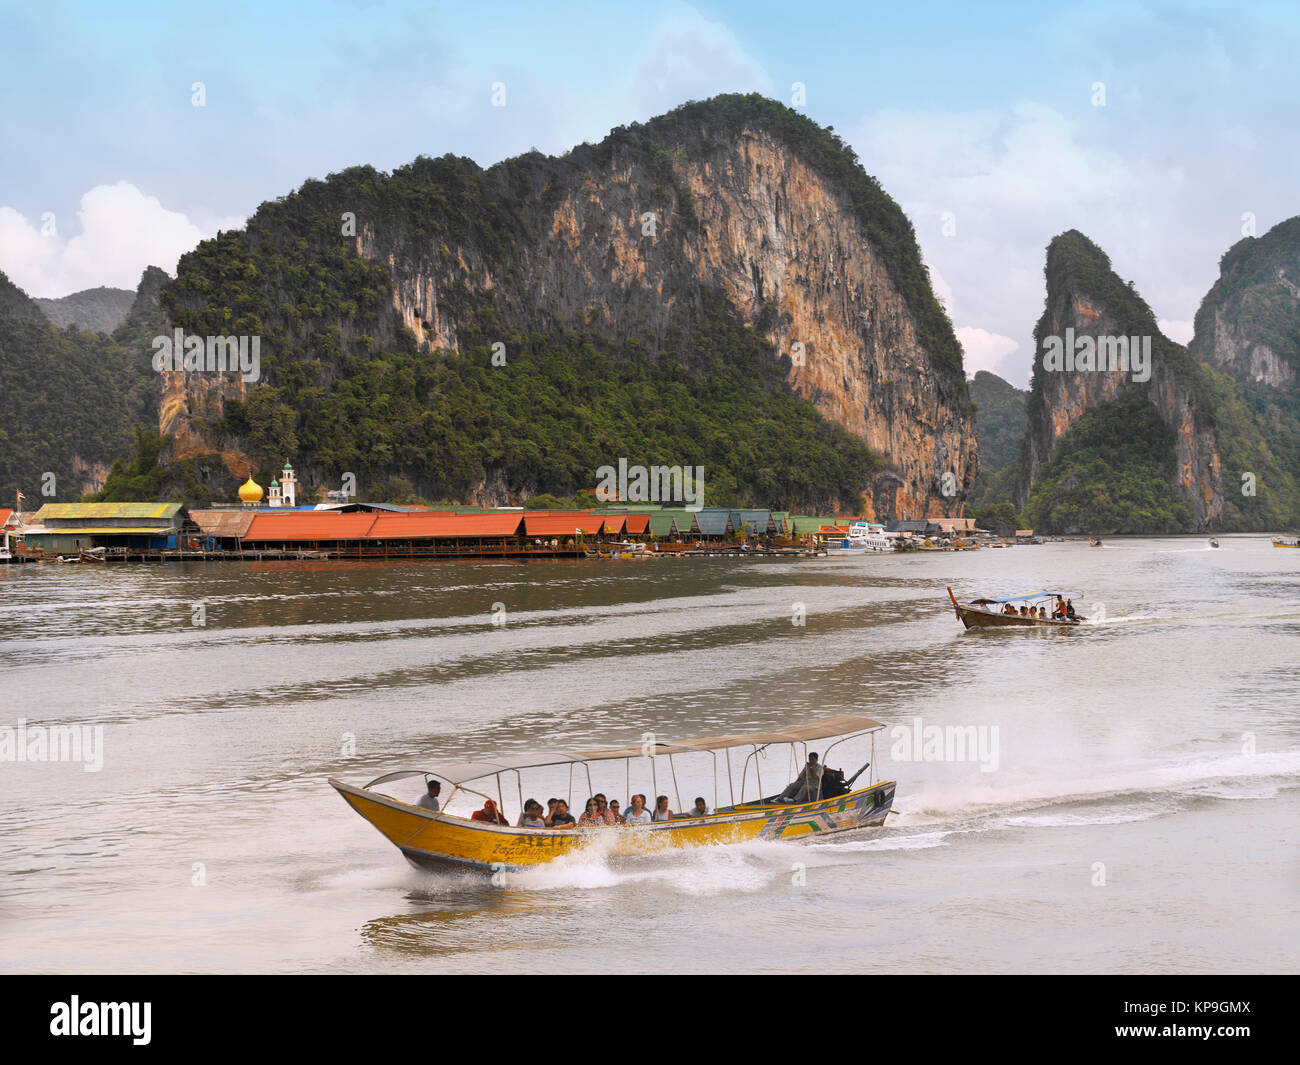 Long-tailed boats near Panyi floating Muslim village in Phangnga Bay near Phuket in southern Thailand. - Stock Image